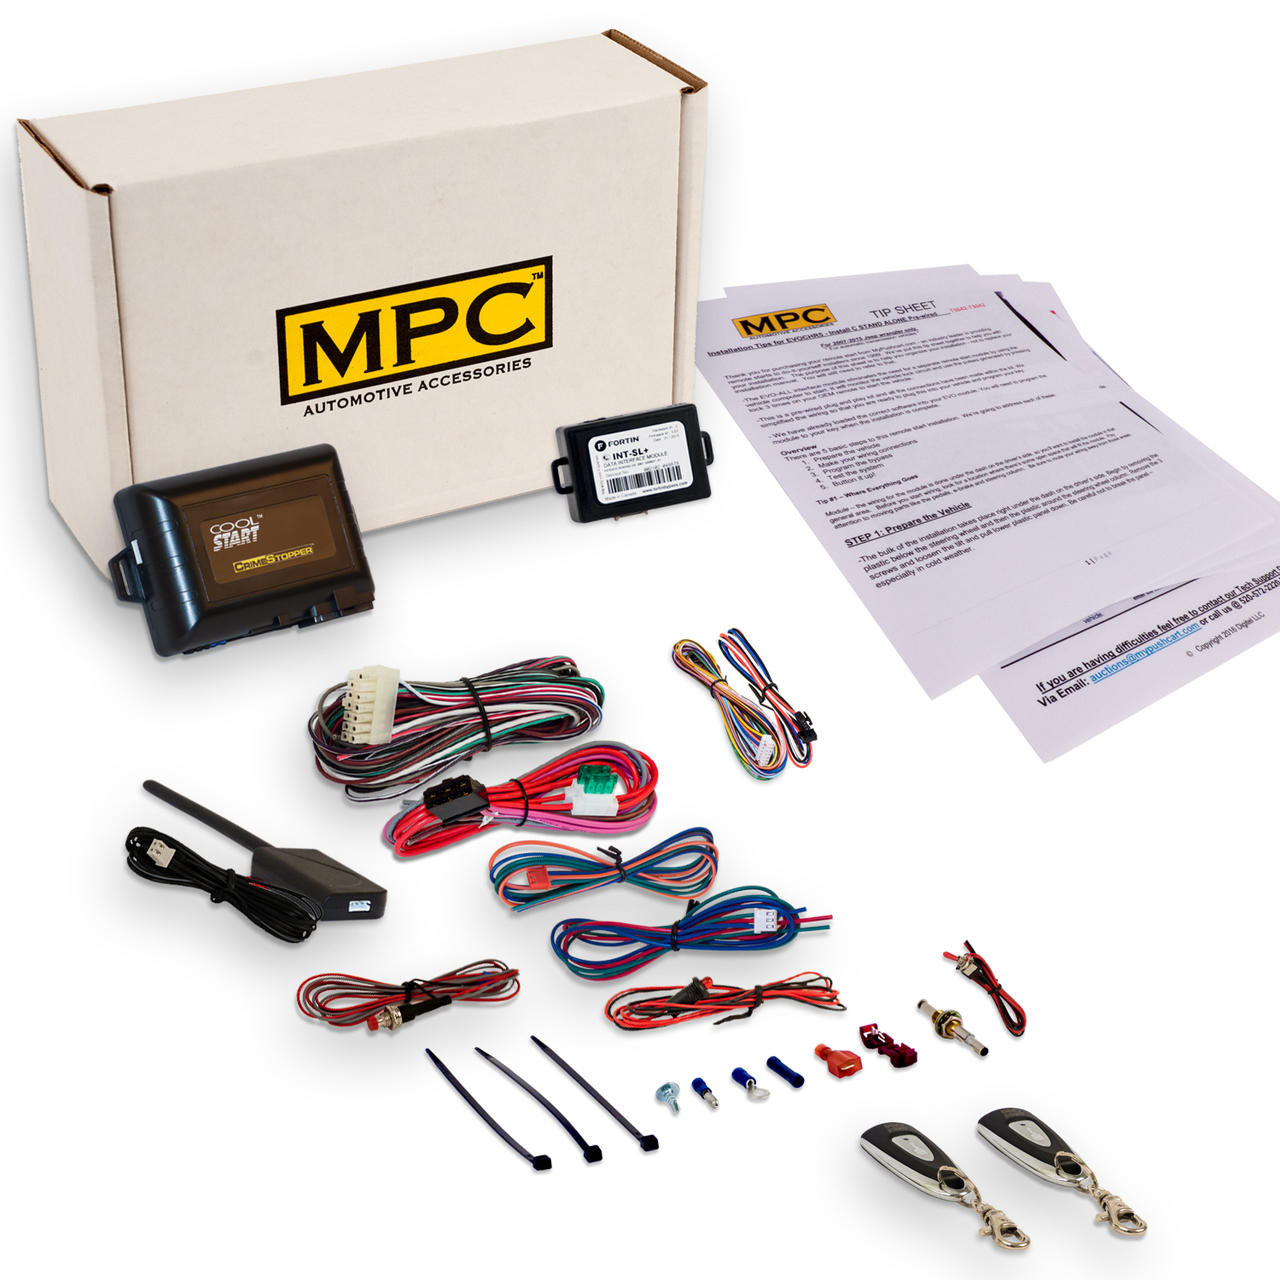 MPC Complete 1-Button Remote Start Kit For 1997-2001 Ford Expedition